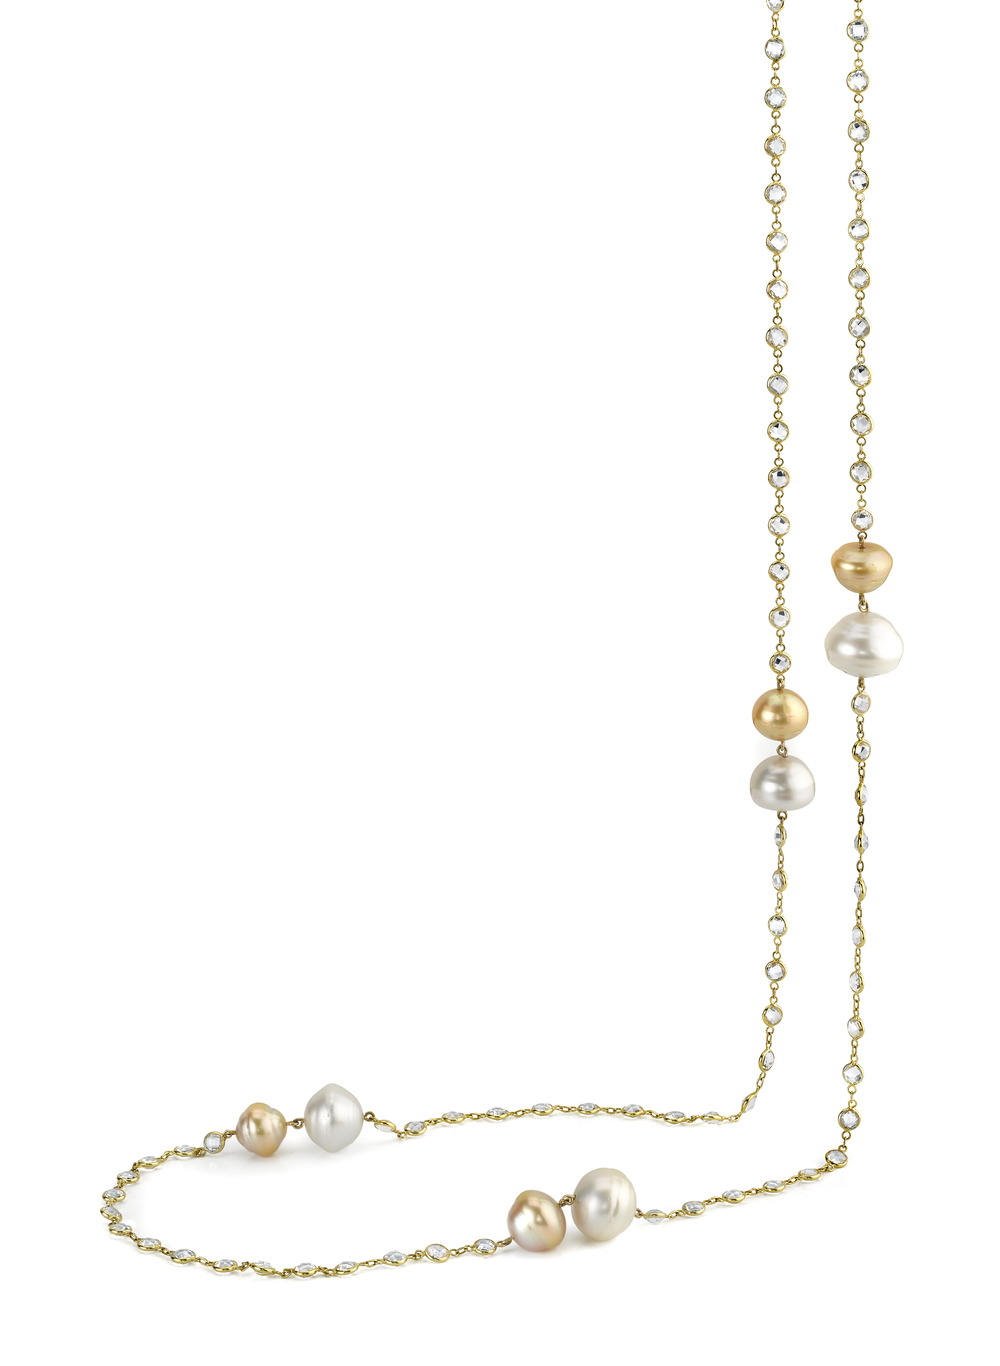 18 Karat Yellow Gold Necklace, accented with South Sea Pearls and White Topaz